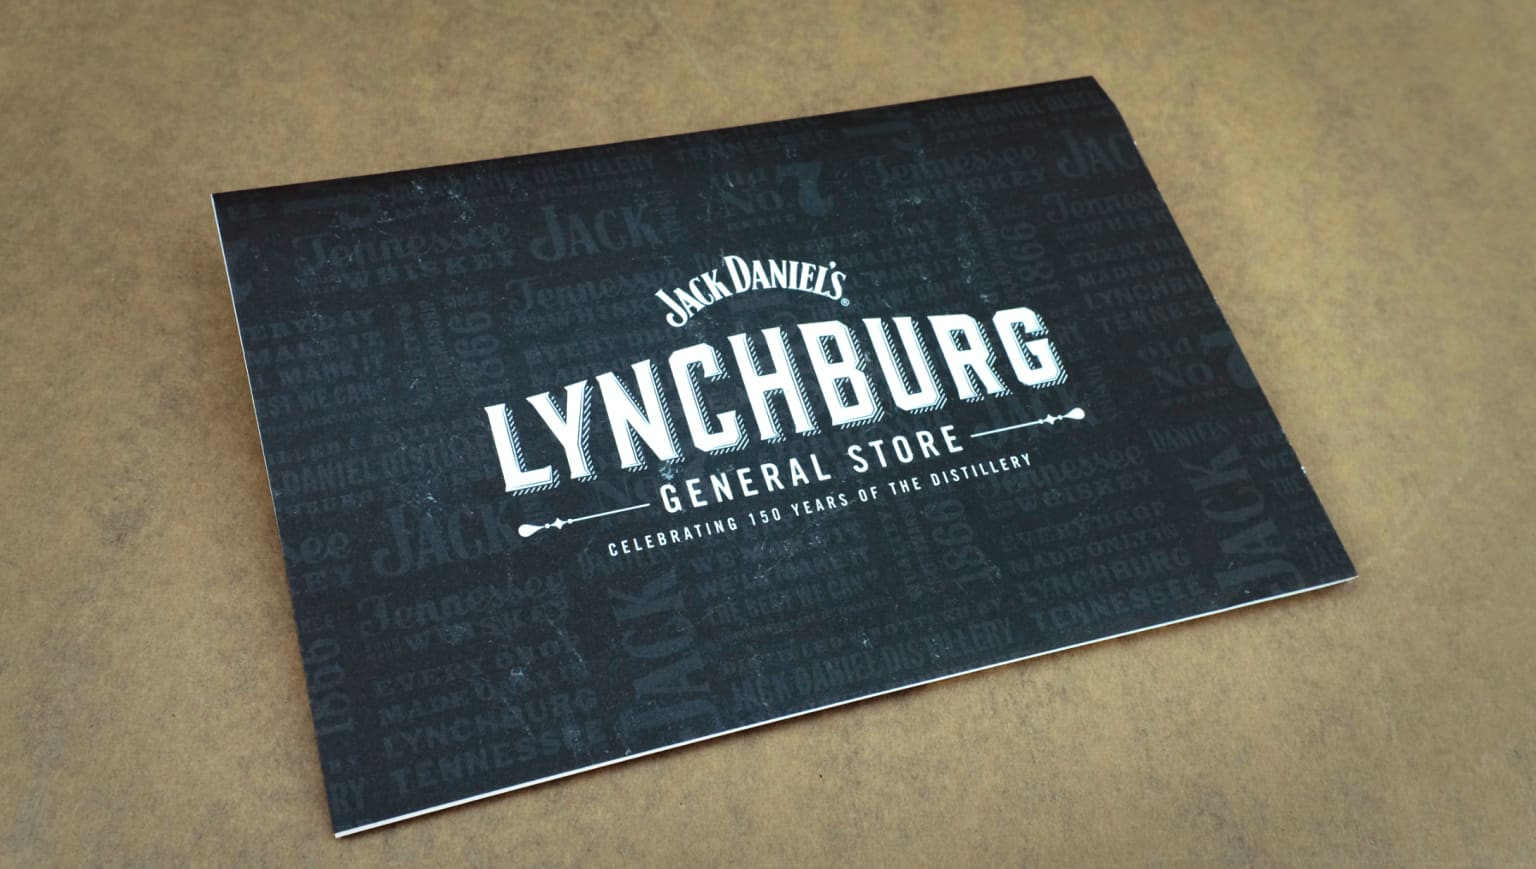 Jack Daniel's Lynchburg General Store Collateral